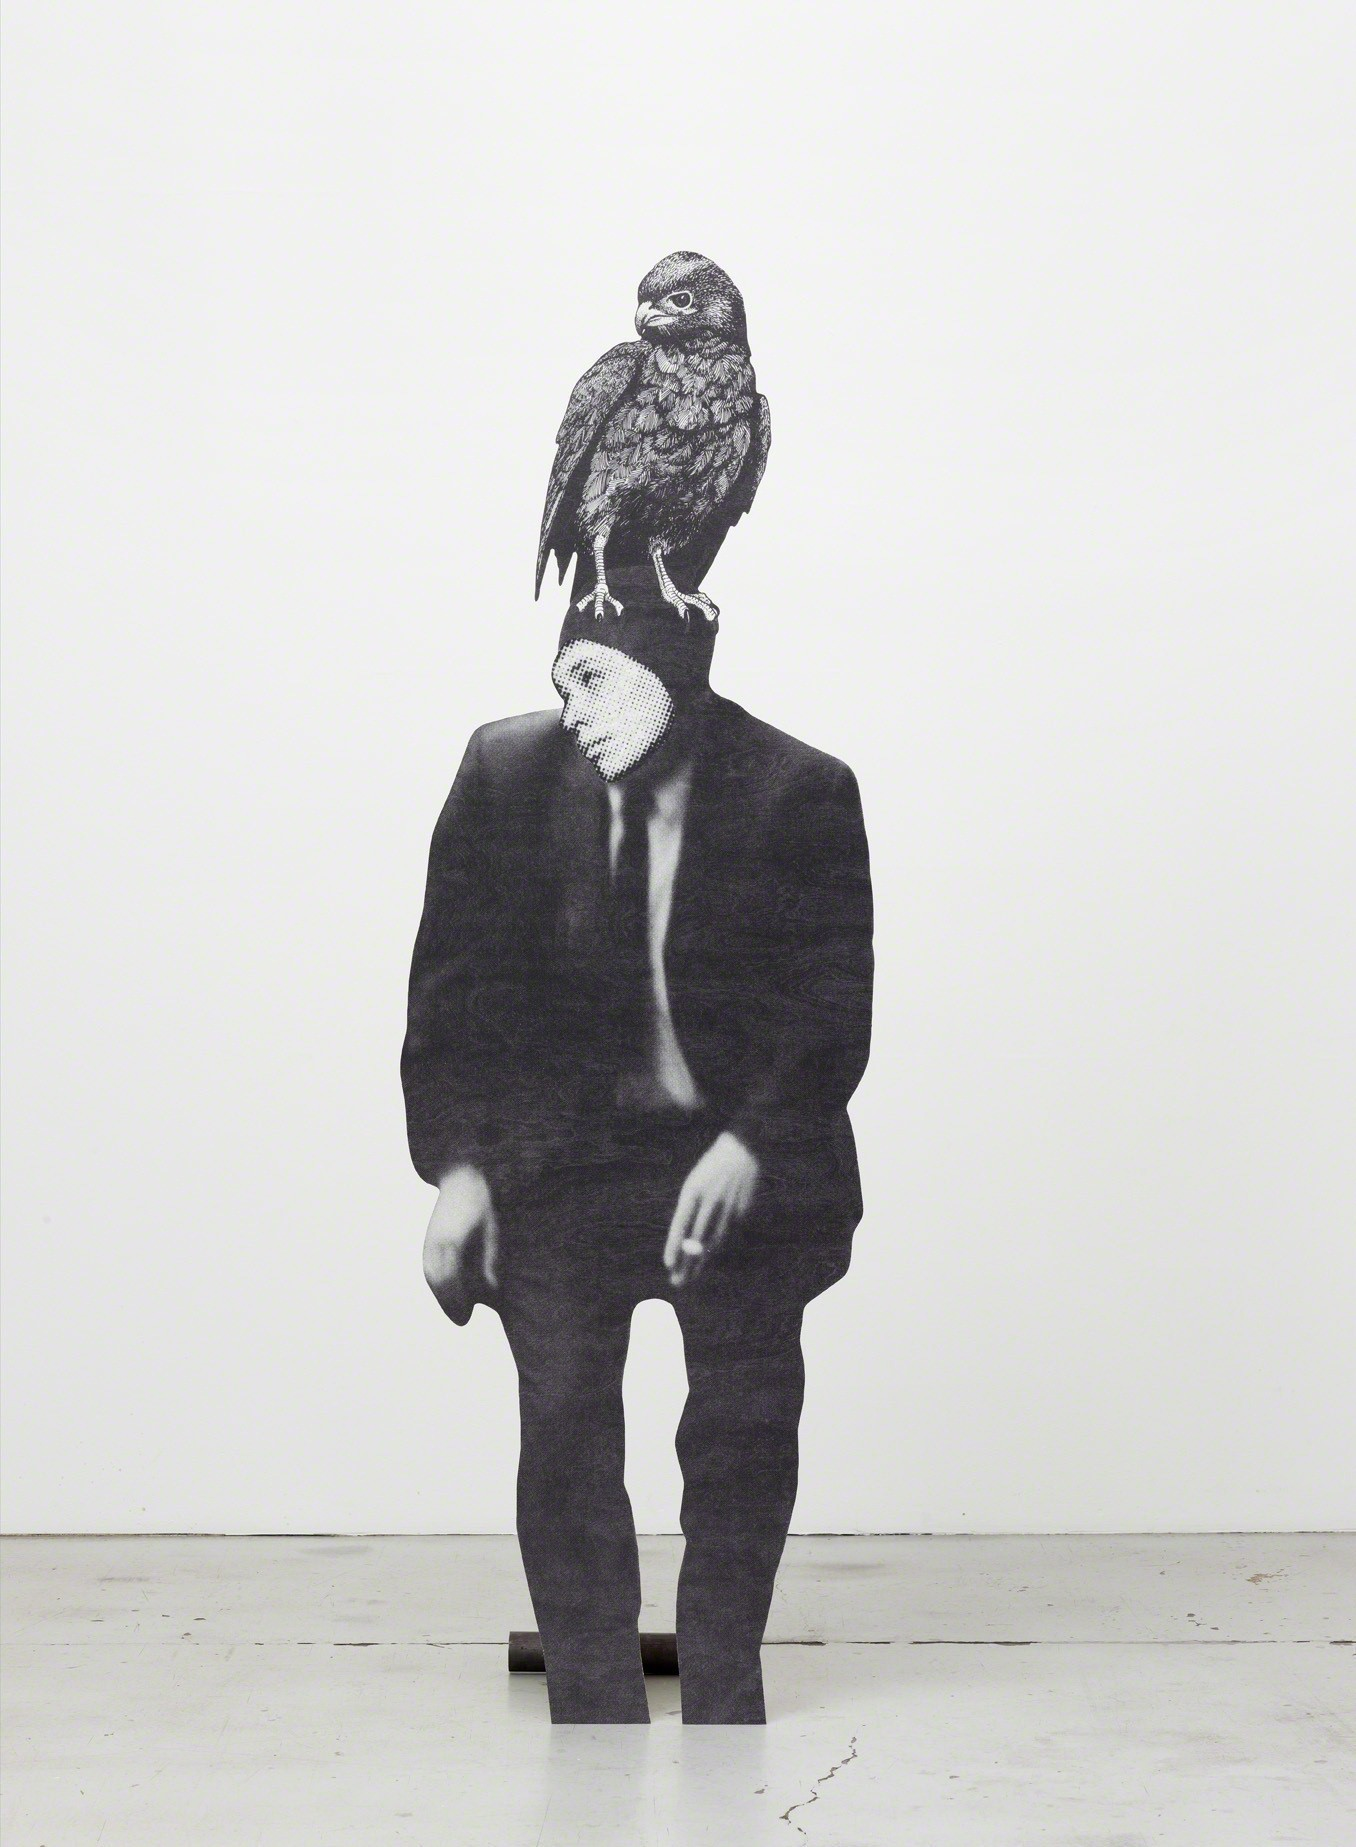 , 'Untitled (Bird),' 2013, Galleri Nicolai Wallner